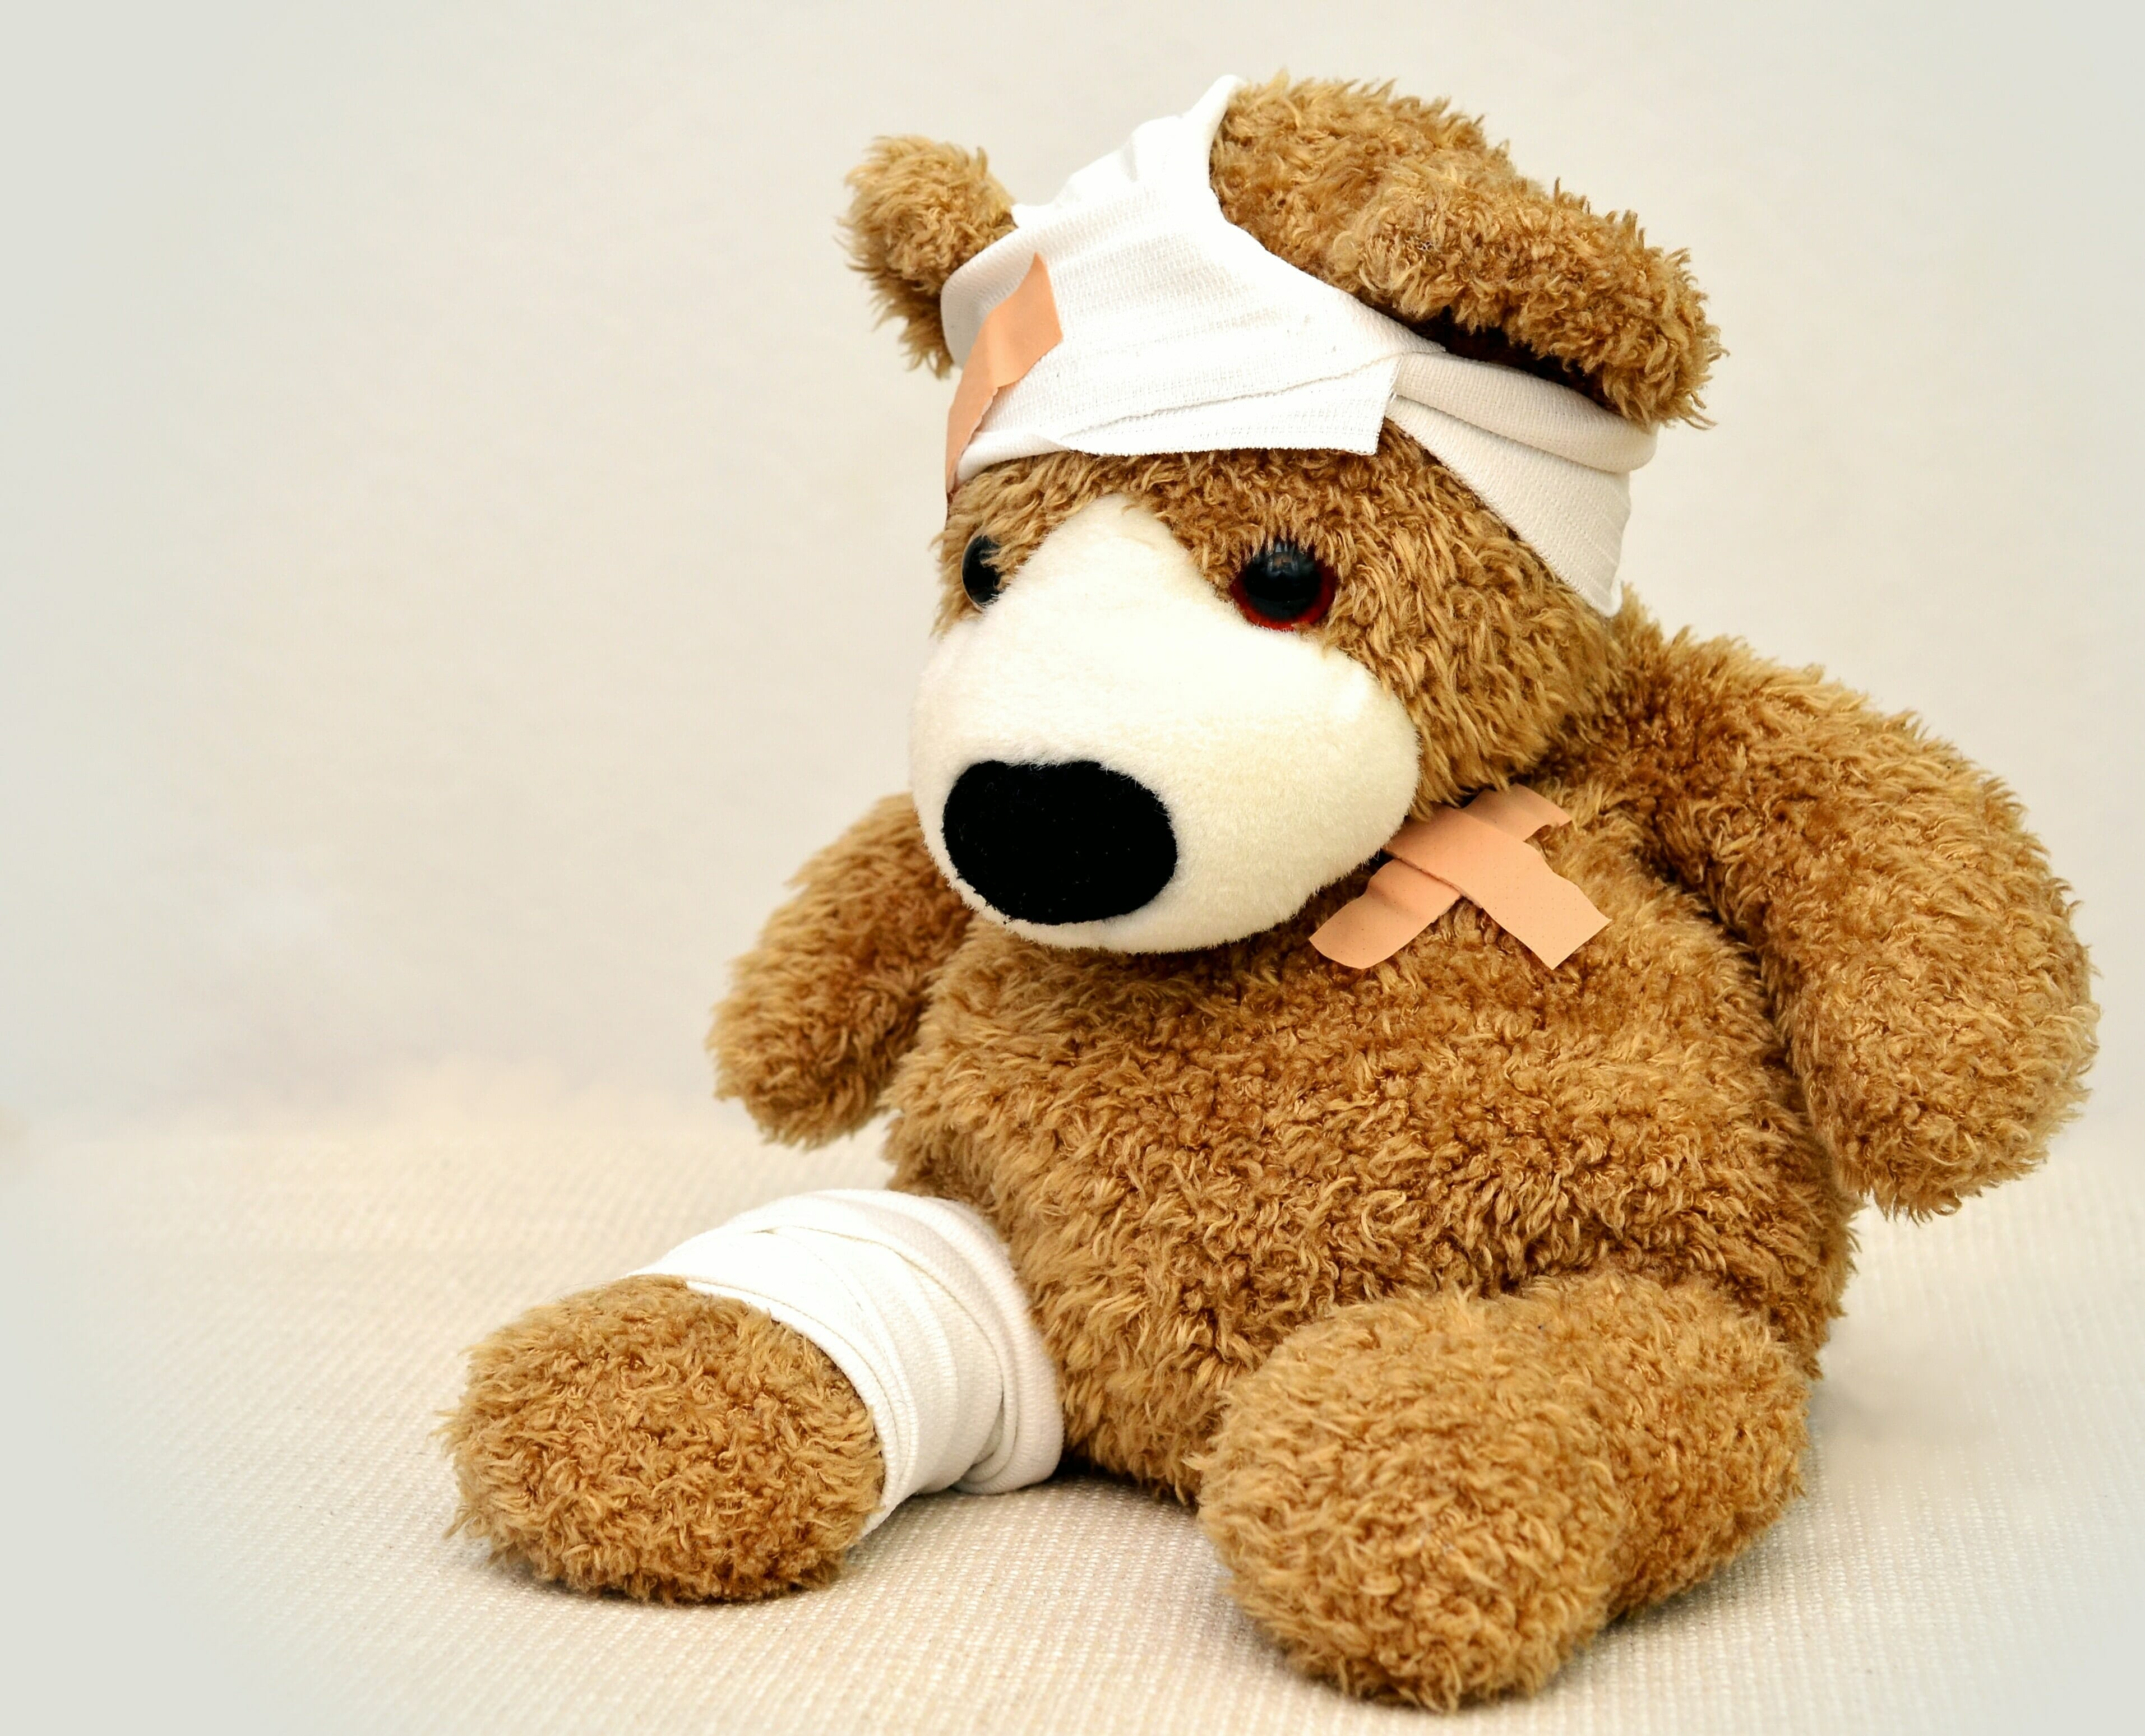 Teddy Bear with bandages on head and leg